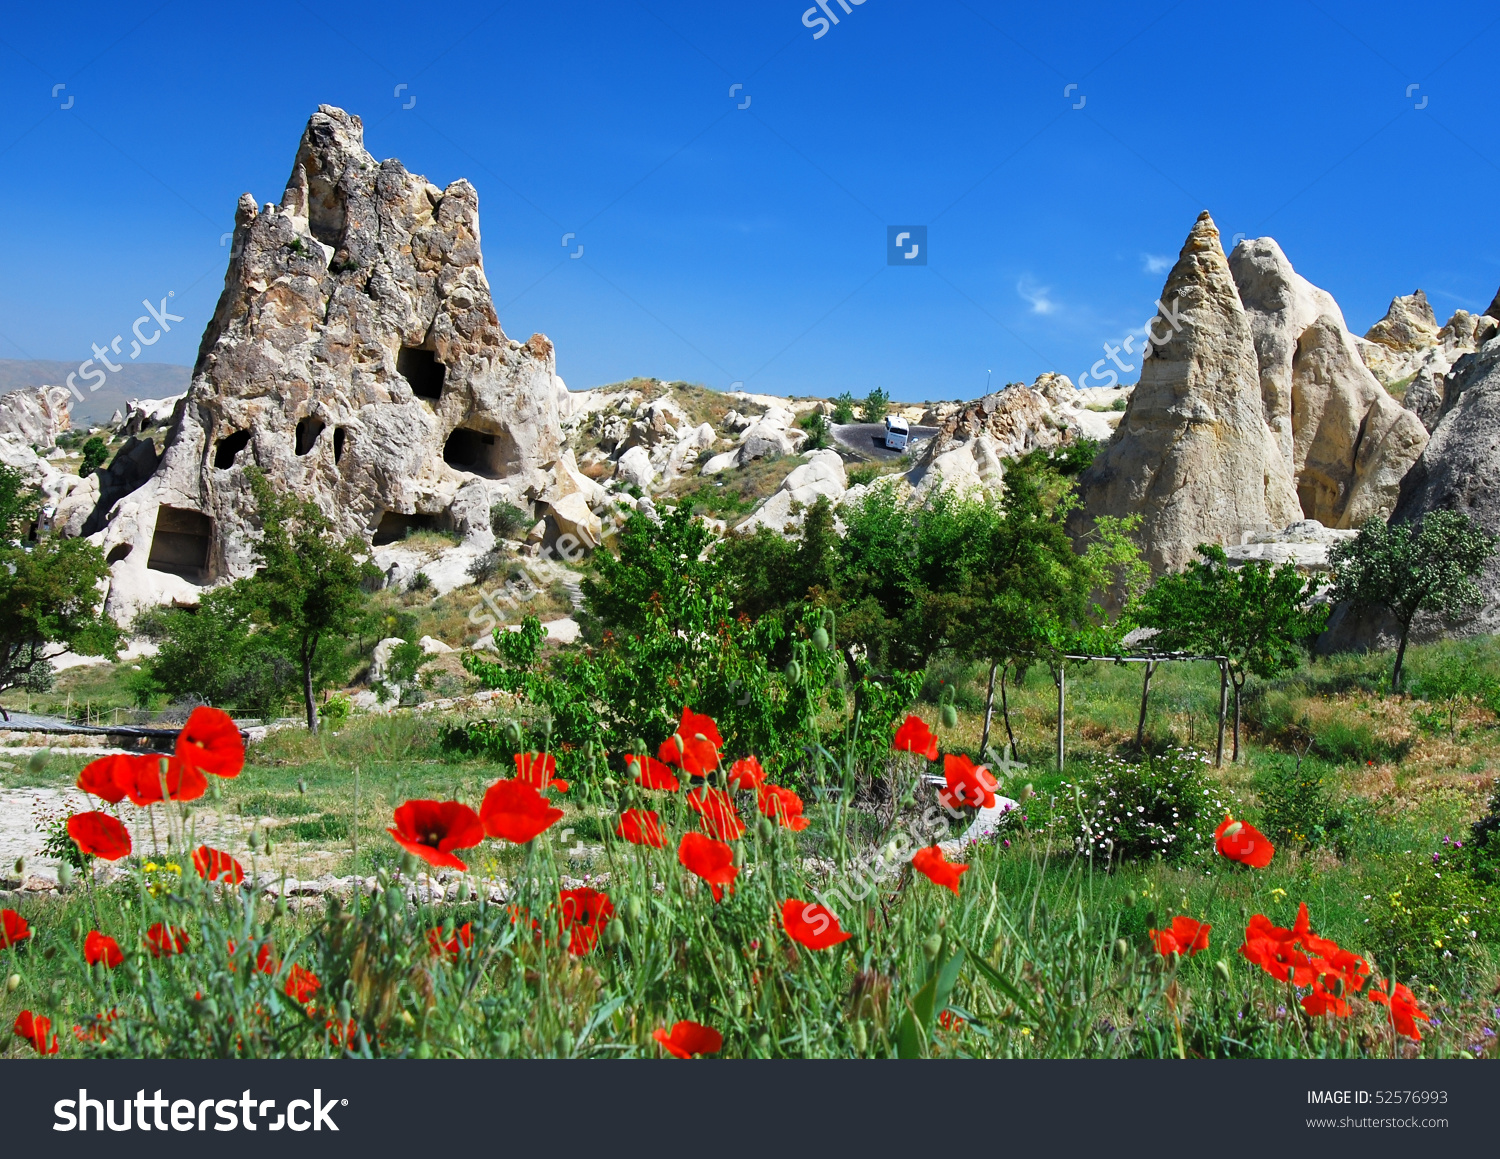 Goreme Open Air Museum, Turkey Stock Photo 52576993 : Shutterstock.